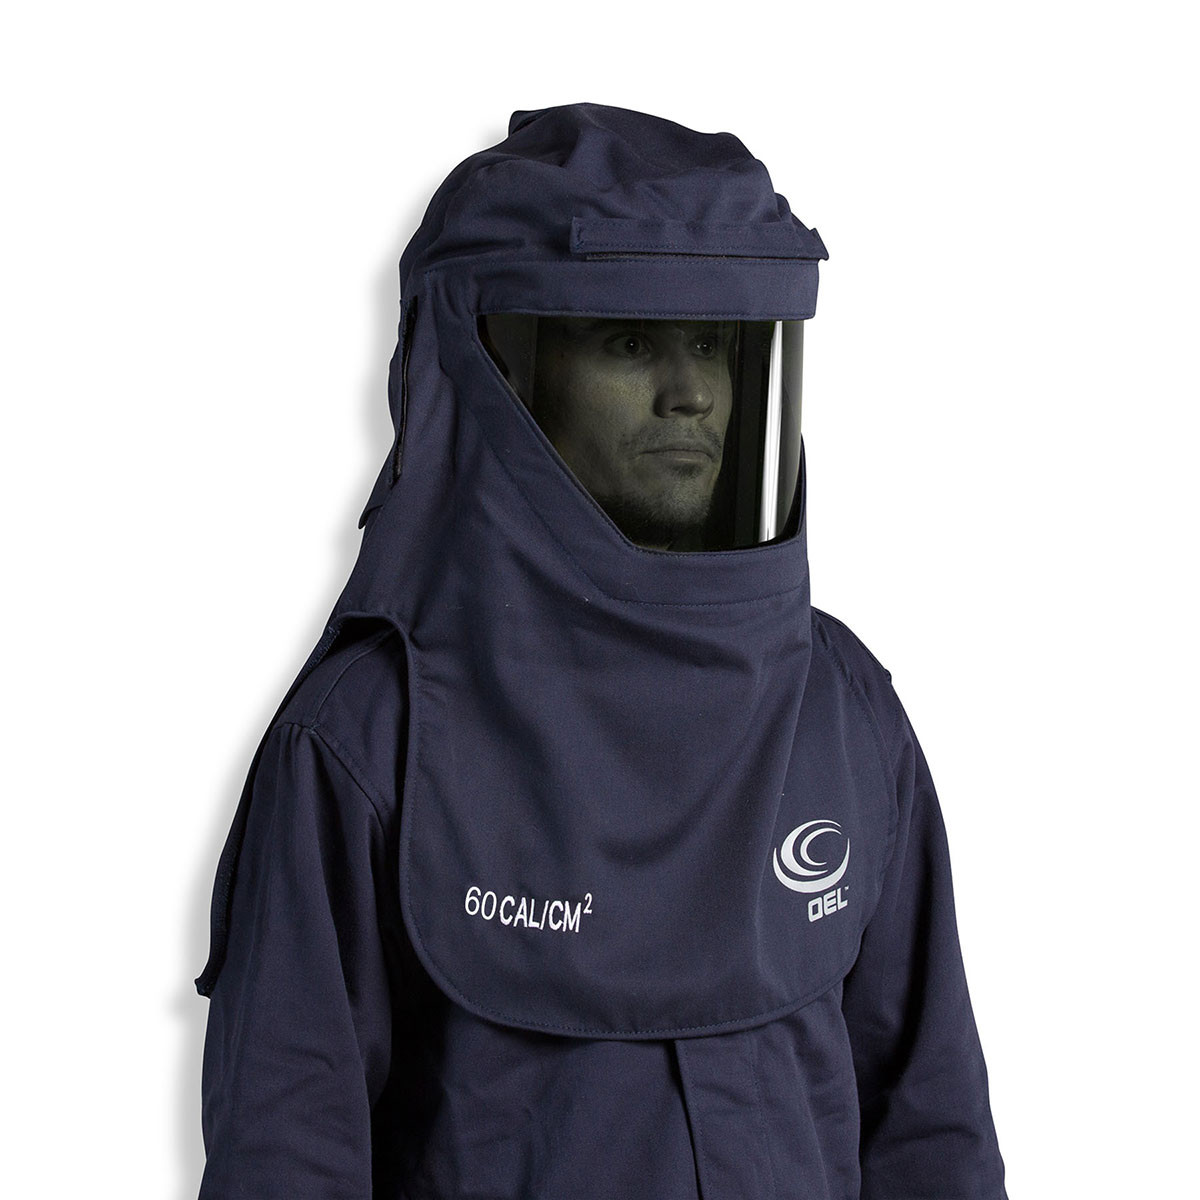 60 CAL Switch Gear Hood (One Size Fits all)